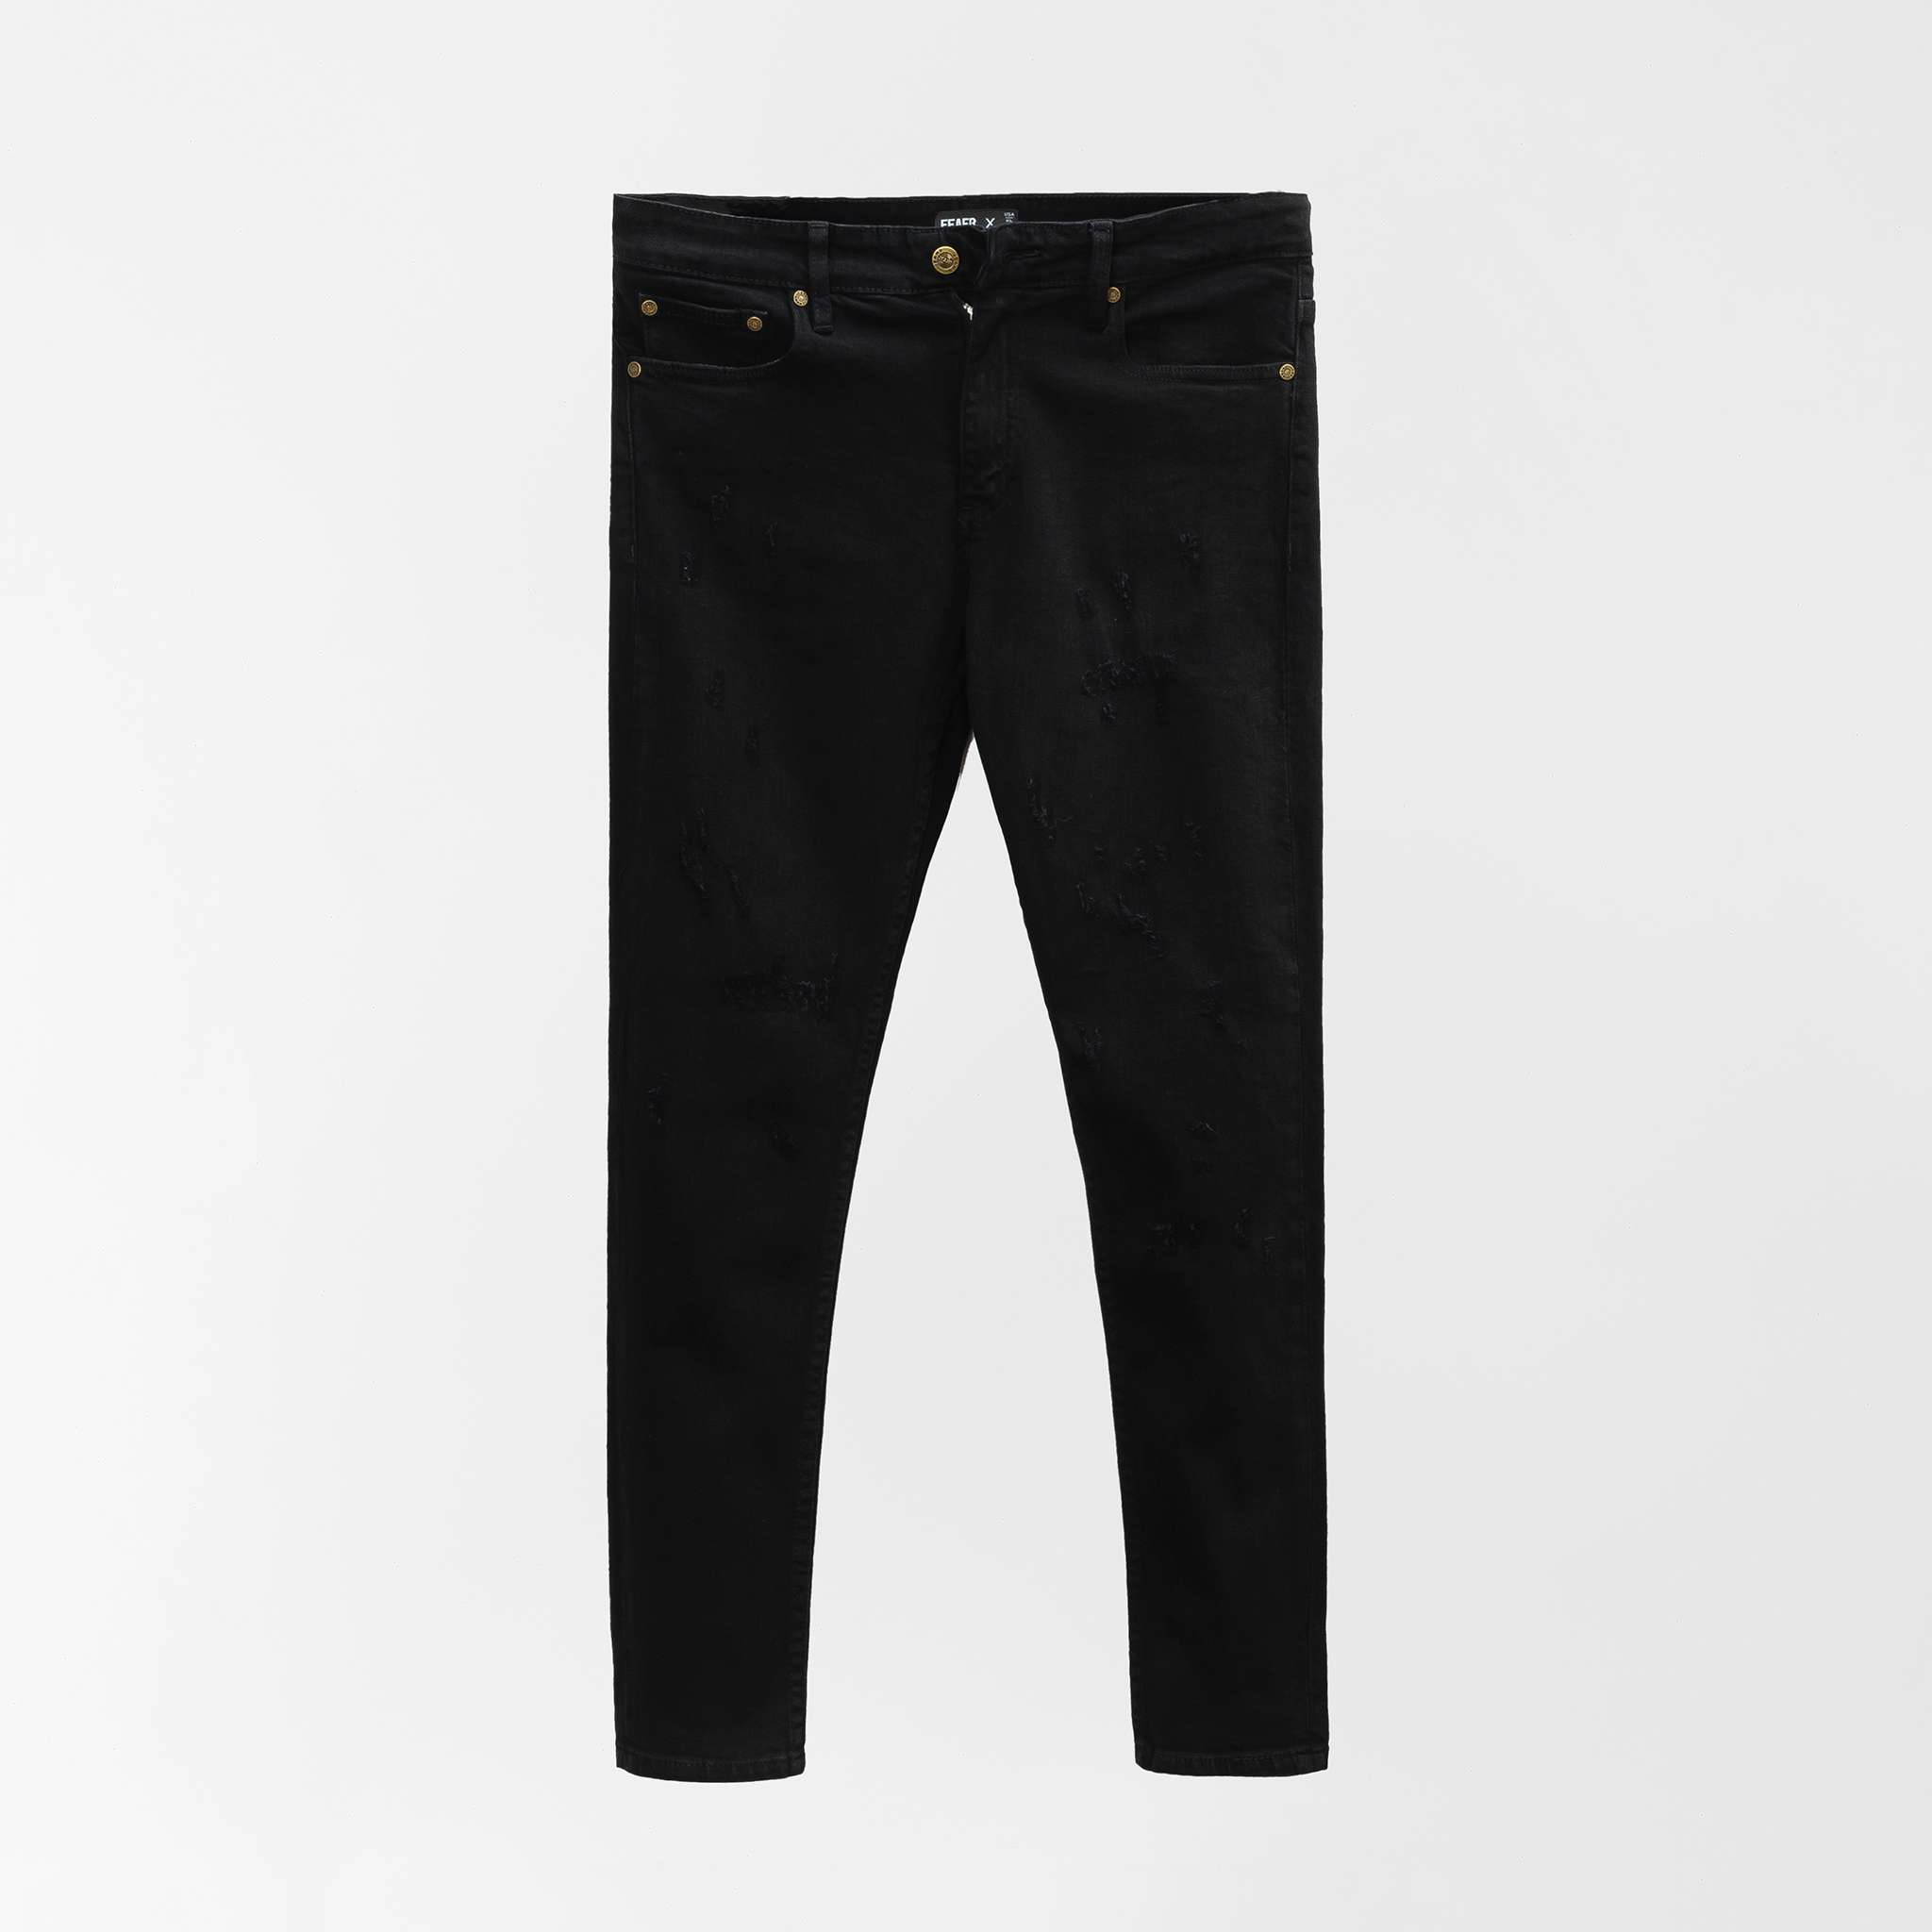 SP276 - Quần Jeans Skinny Ripped Black Wash V2